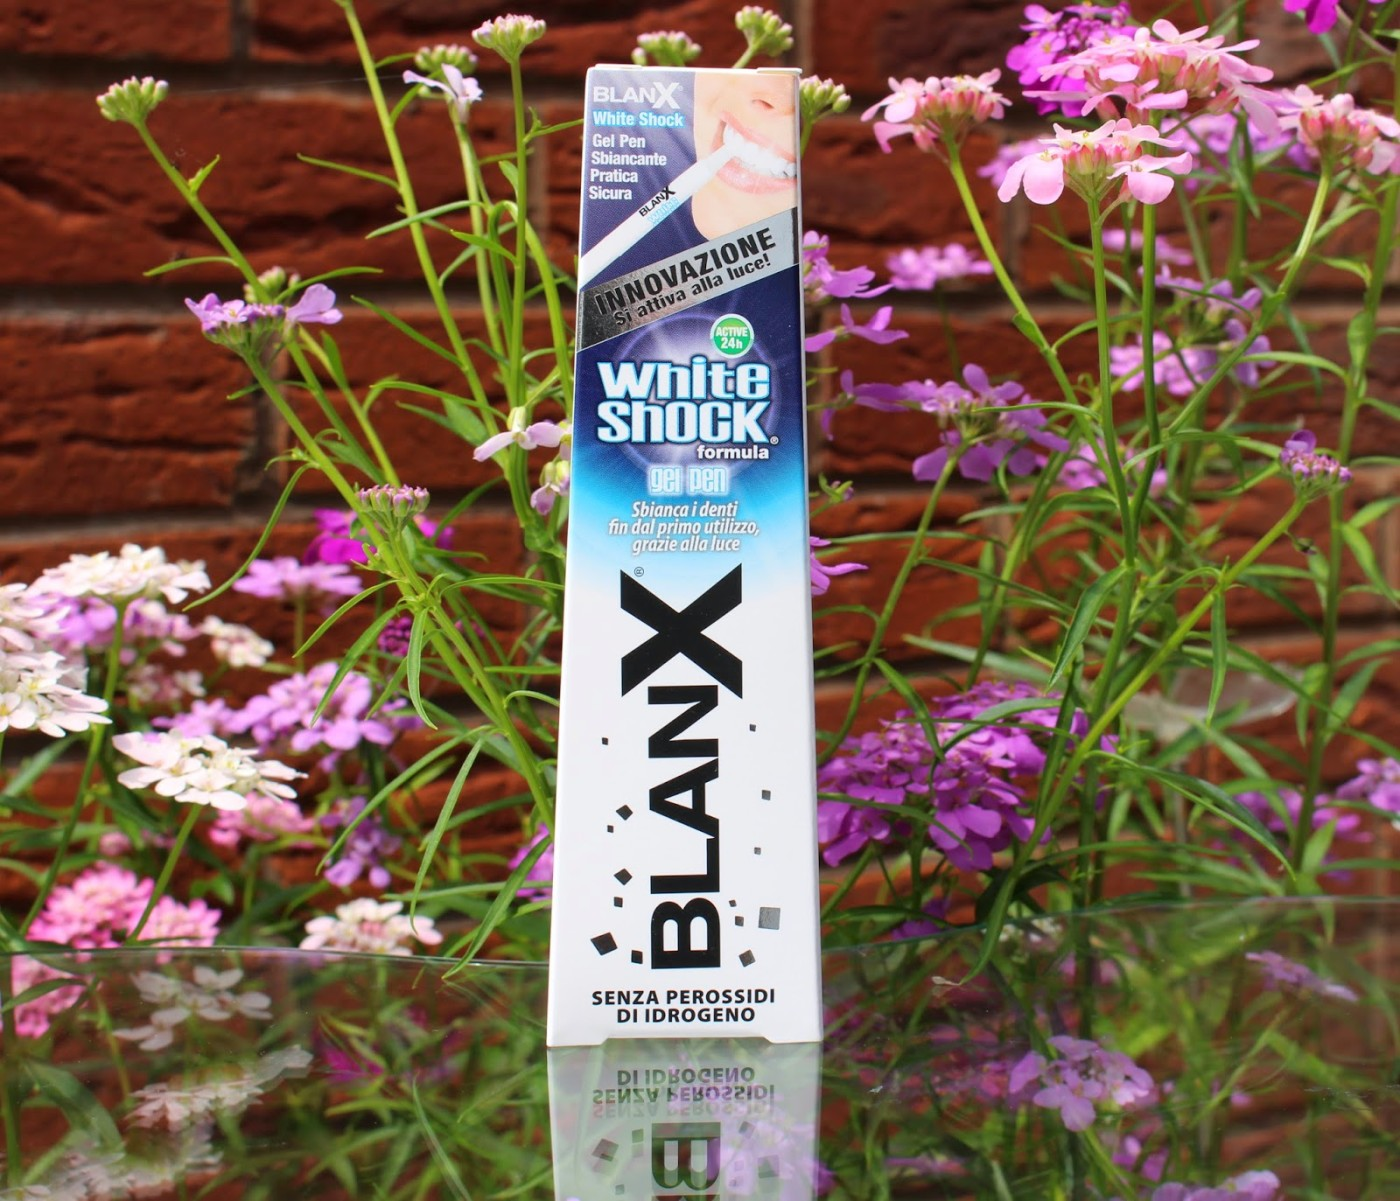 blanx, BlanX white shock formula, bland white shock, teeth whitening, through chelsea's eyes, review, bland white shock complete range